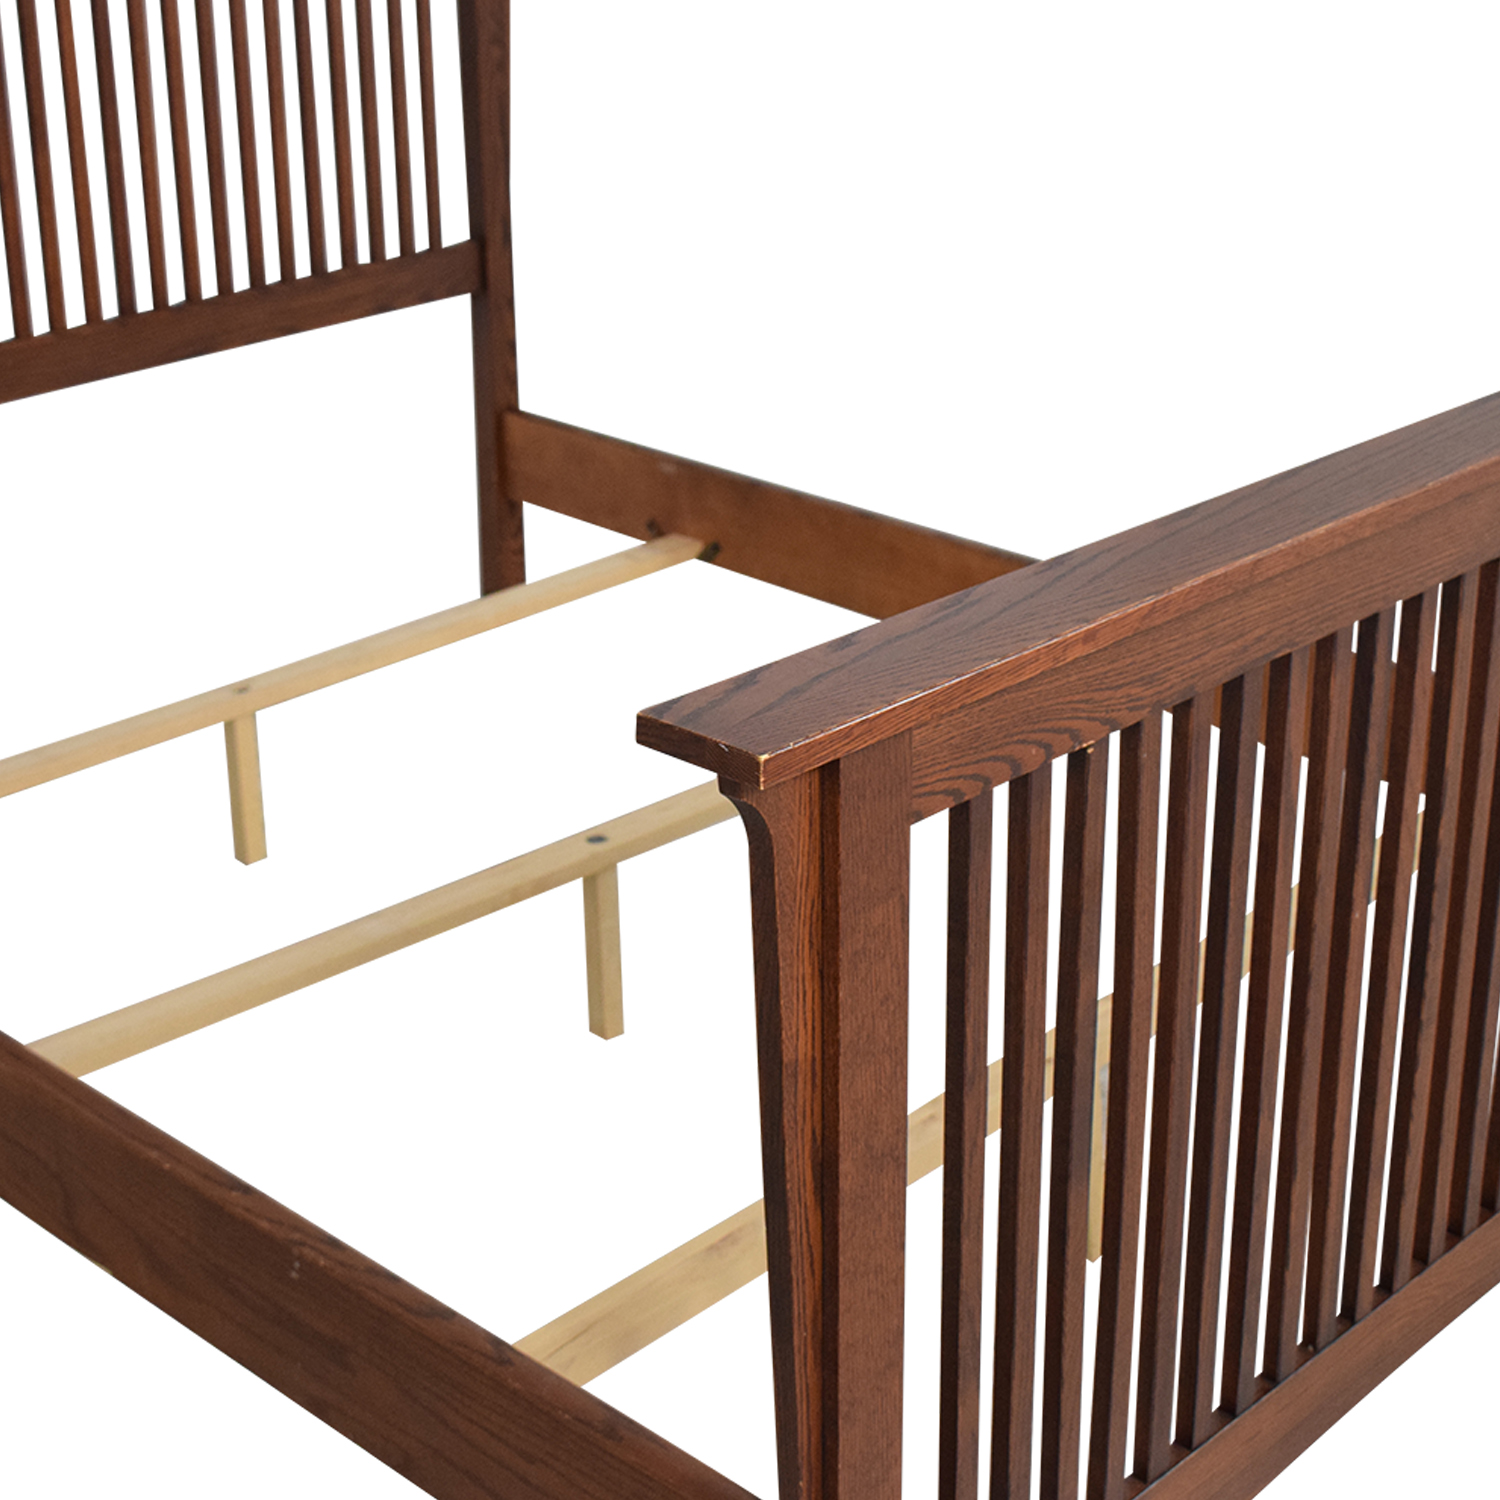 Thomasville Thomasville Queen Spindle Bed Frame coupon